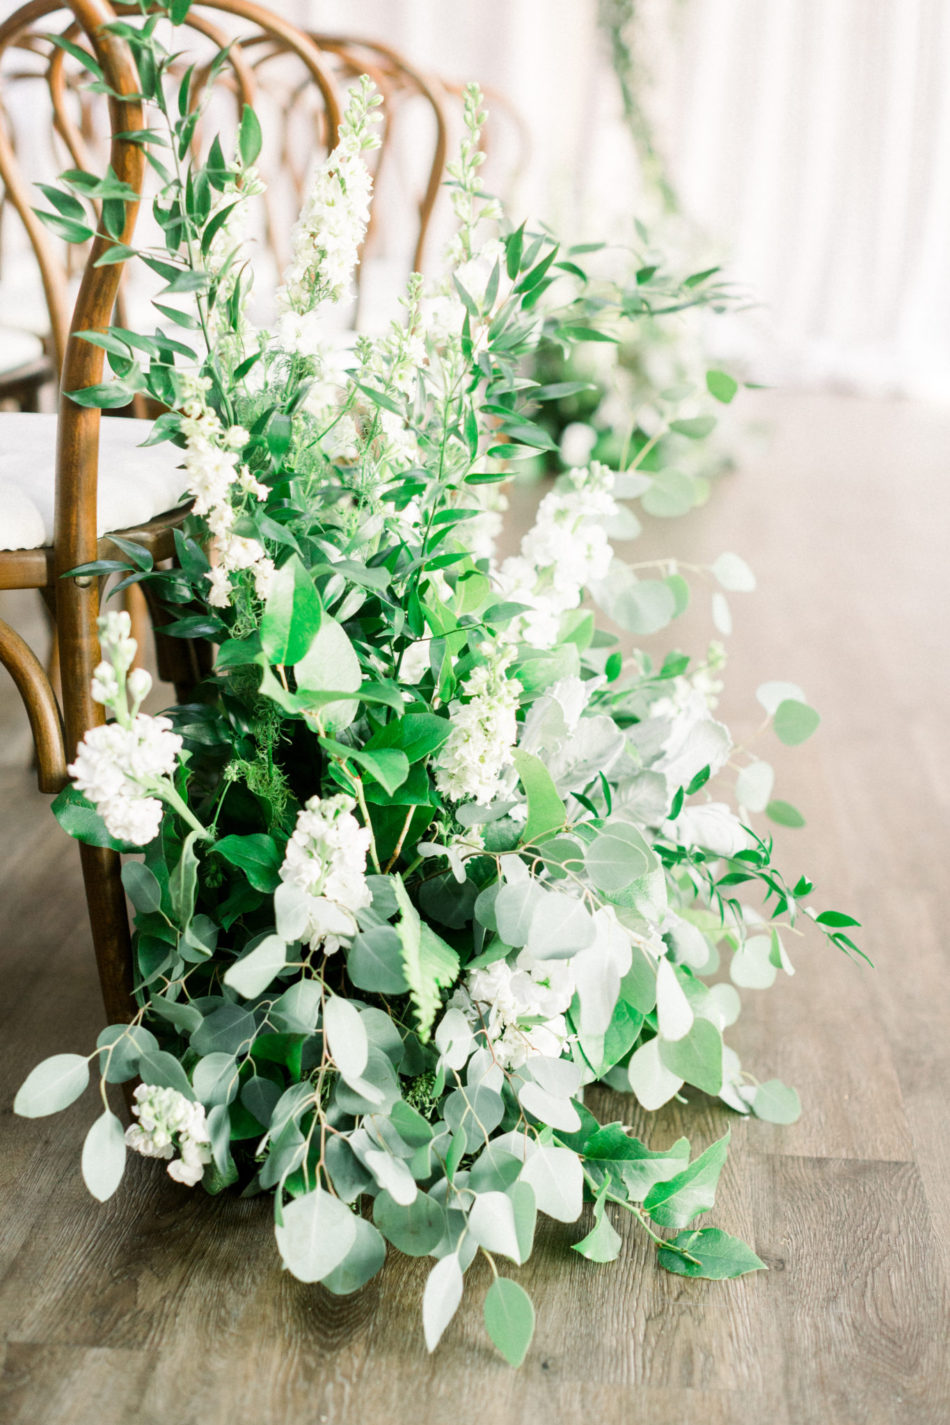 white blooms, white floral decor, white floral design, floral design, florist, wedding florist, wedding flowers, orange county weddings, orange county wedding florist, orange county florist, orange county floral design, flowers by cina